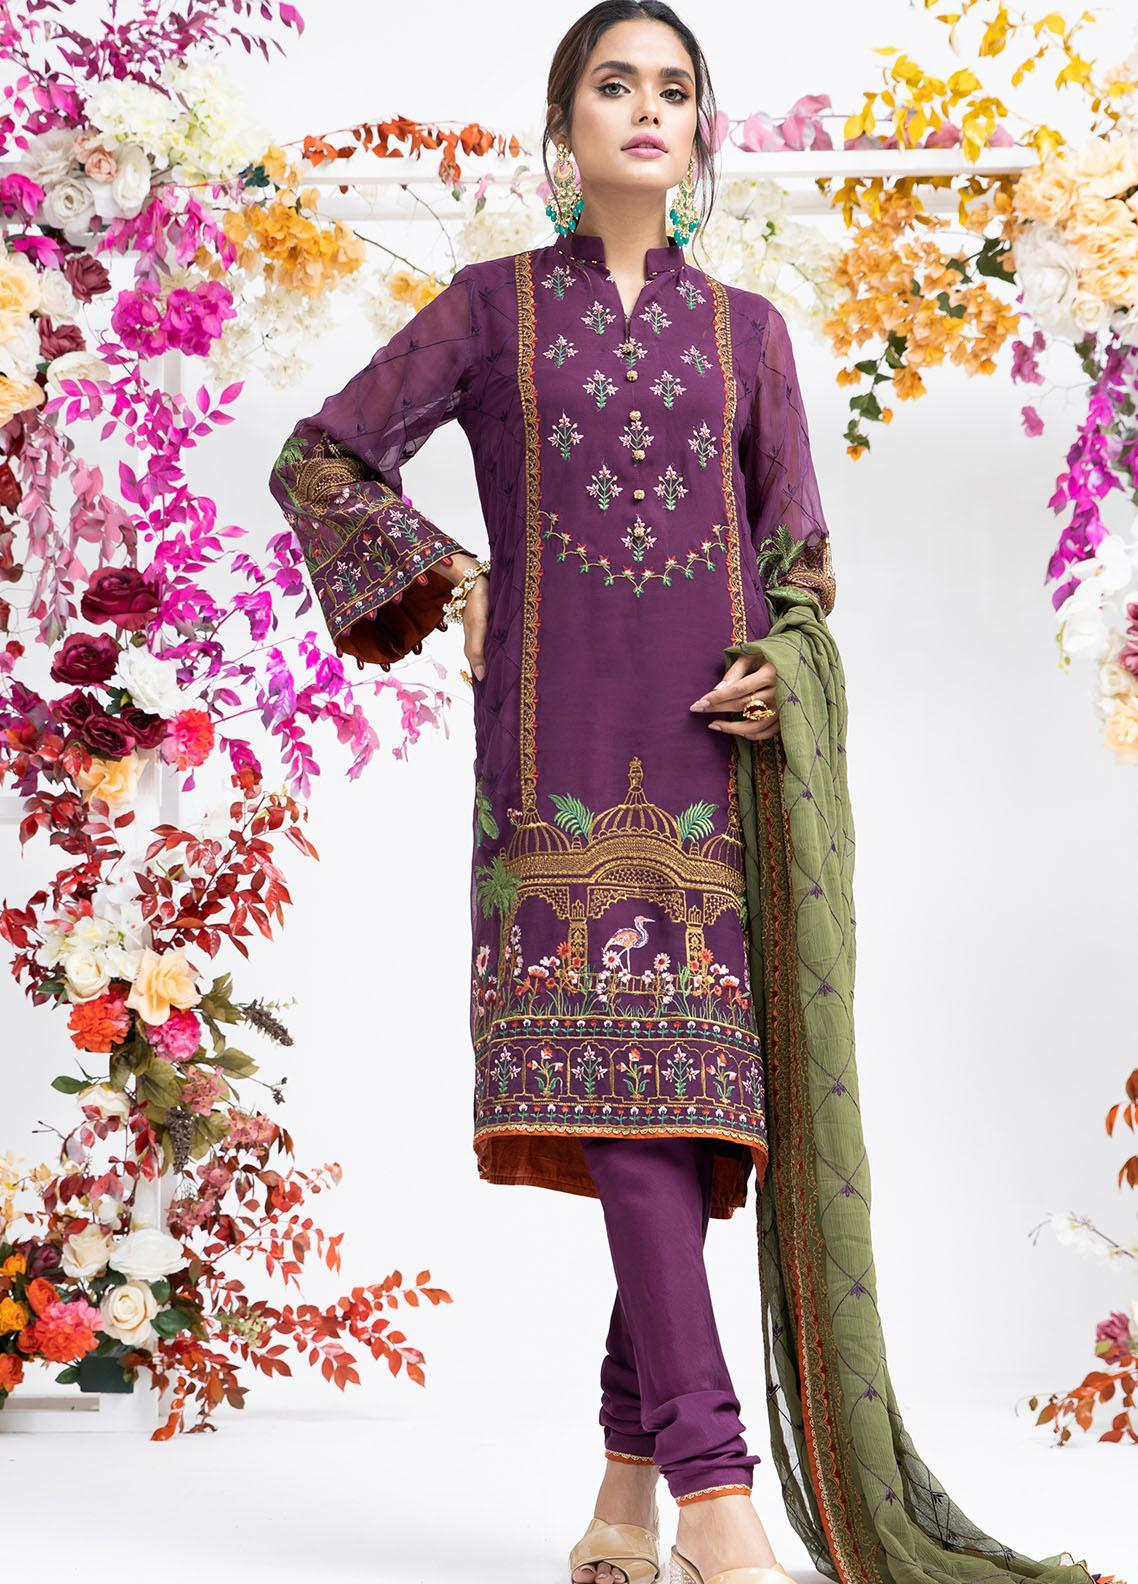 Parishey By Zaaviay Embroidered Chiffon Suits Unstitched 3 Piece KHUWAAB - Luxury Collection